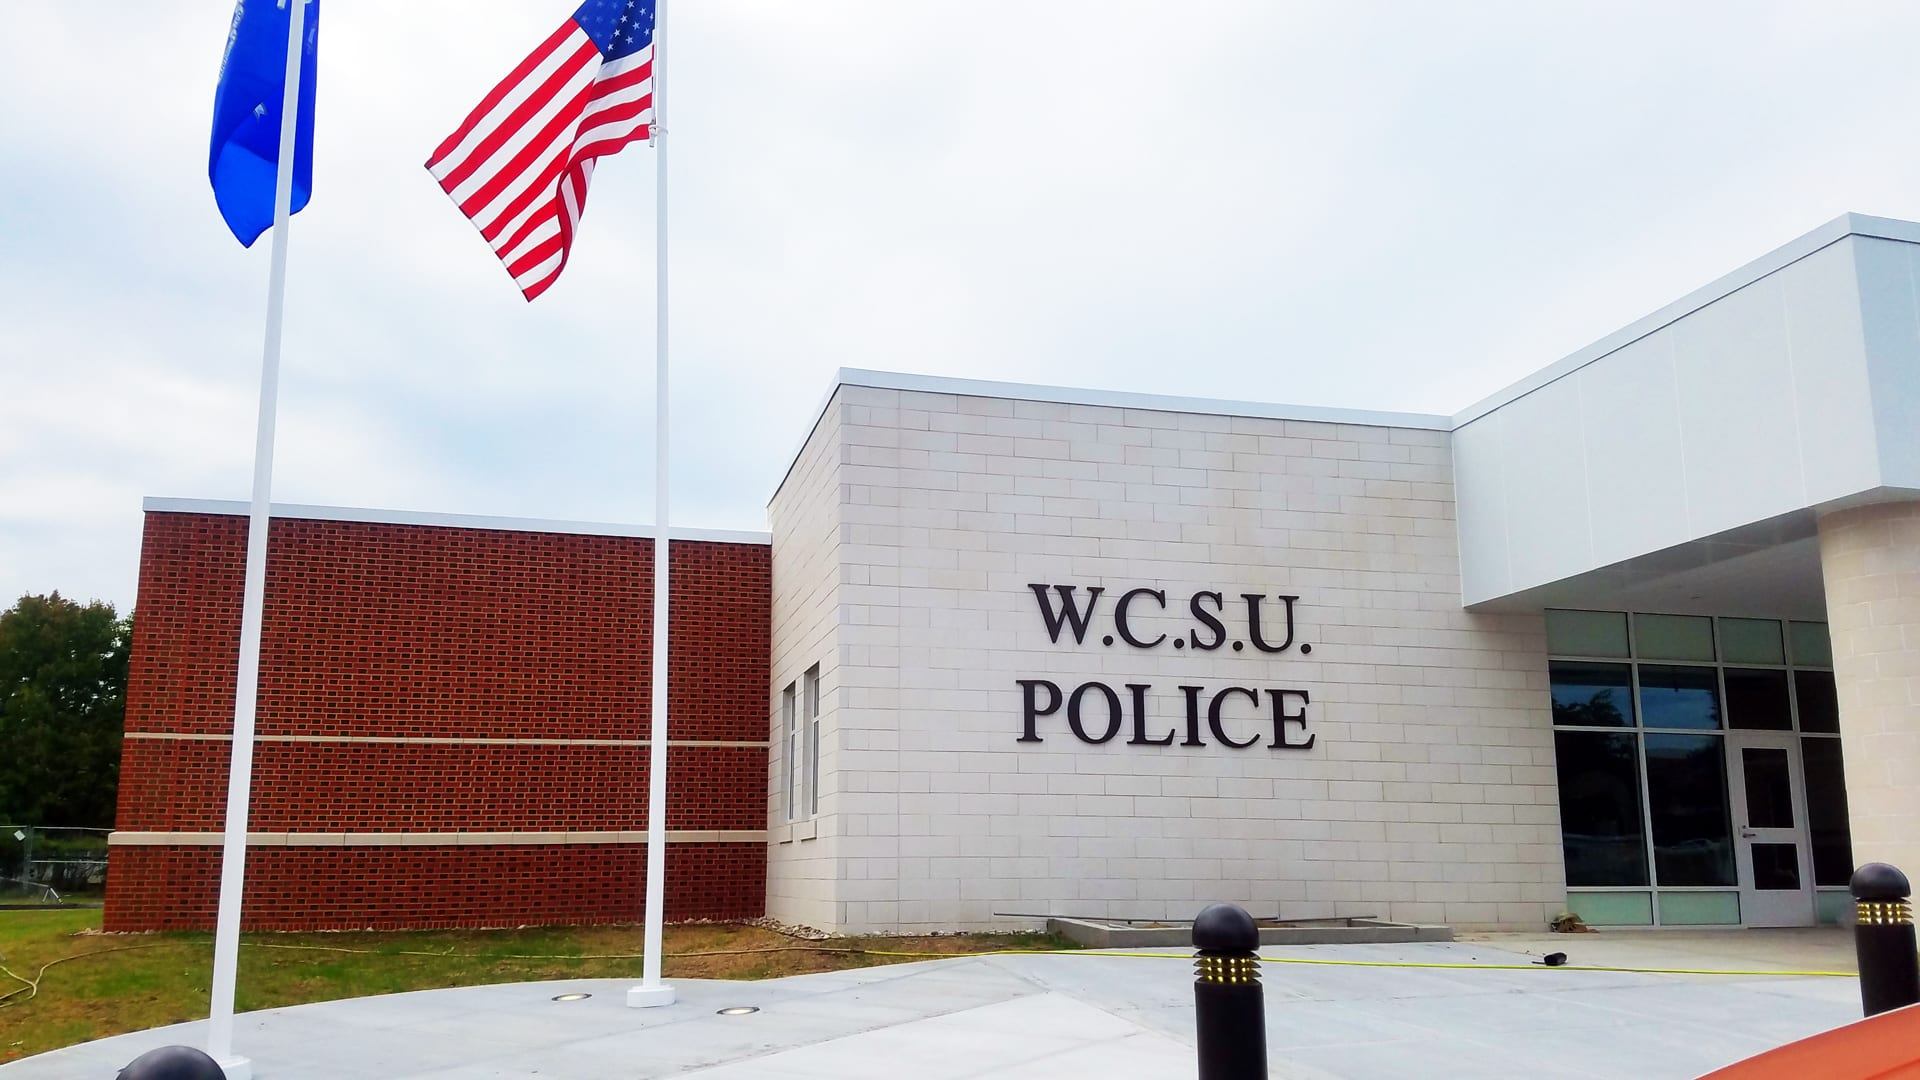 WCSU Police - Exterior Cast Metal Letters